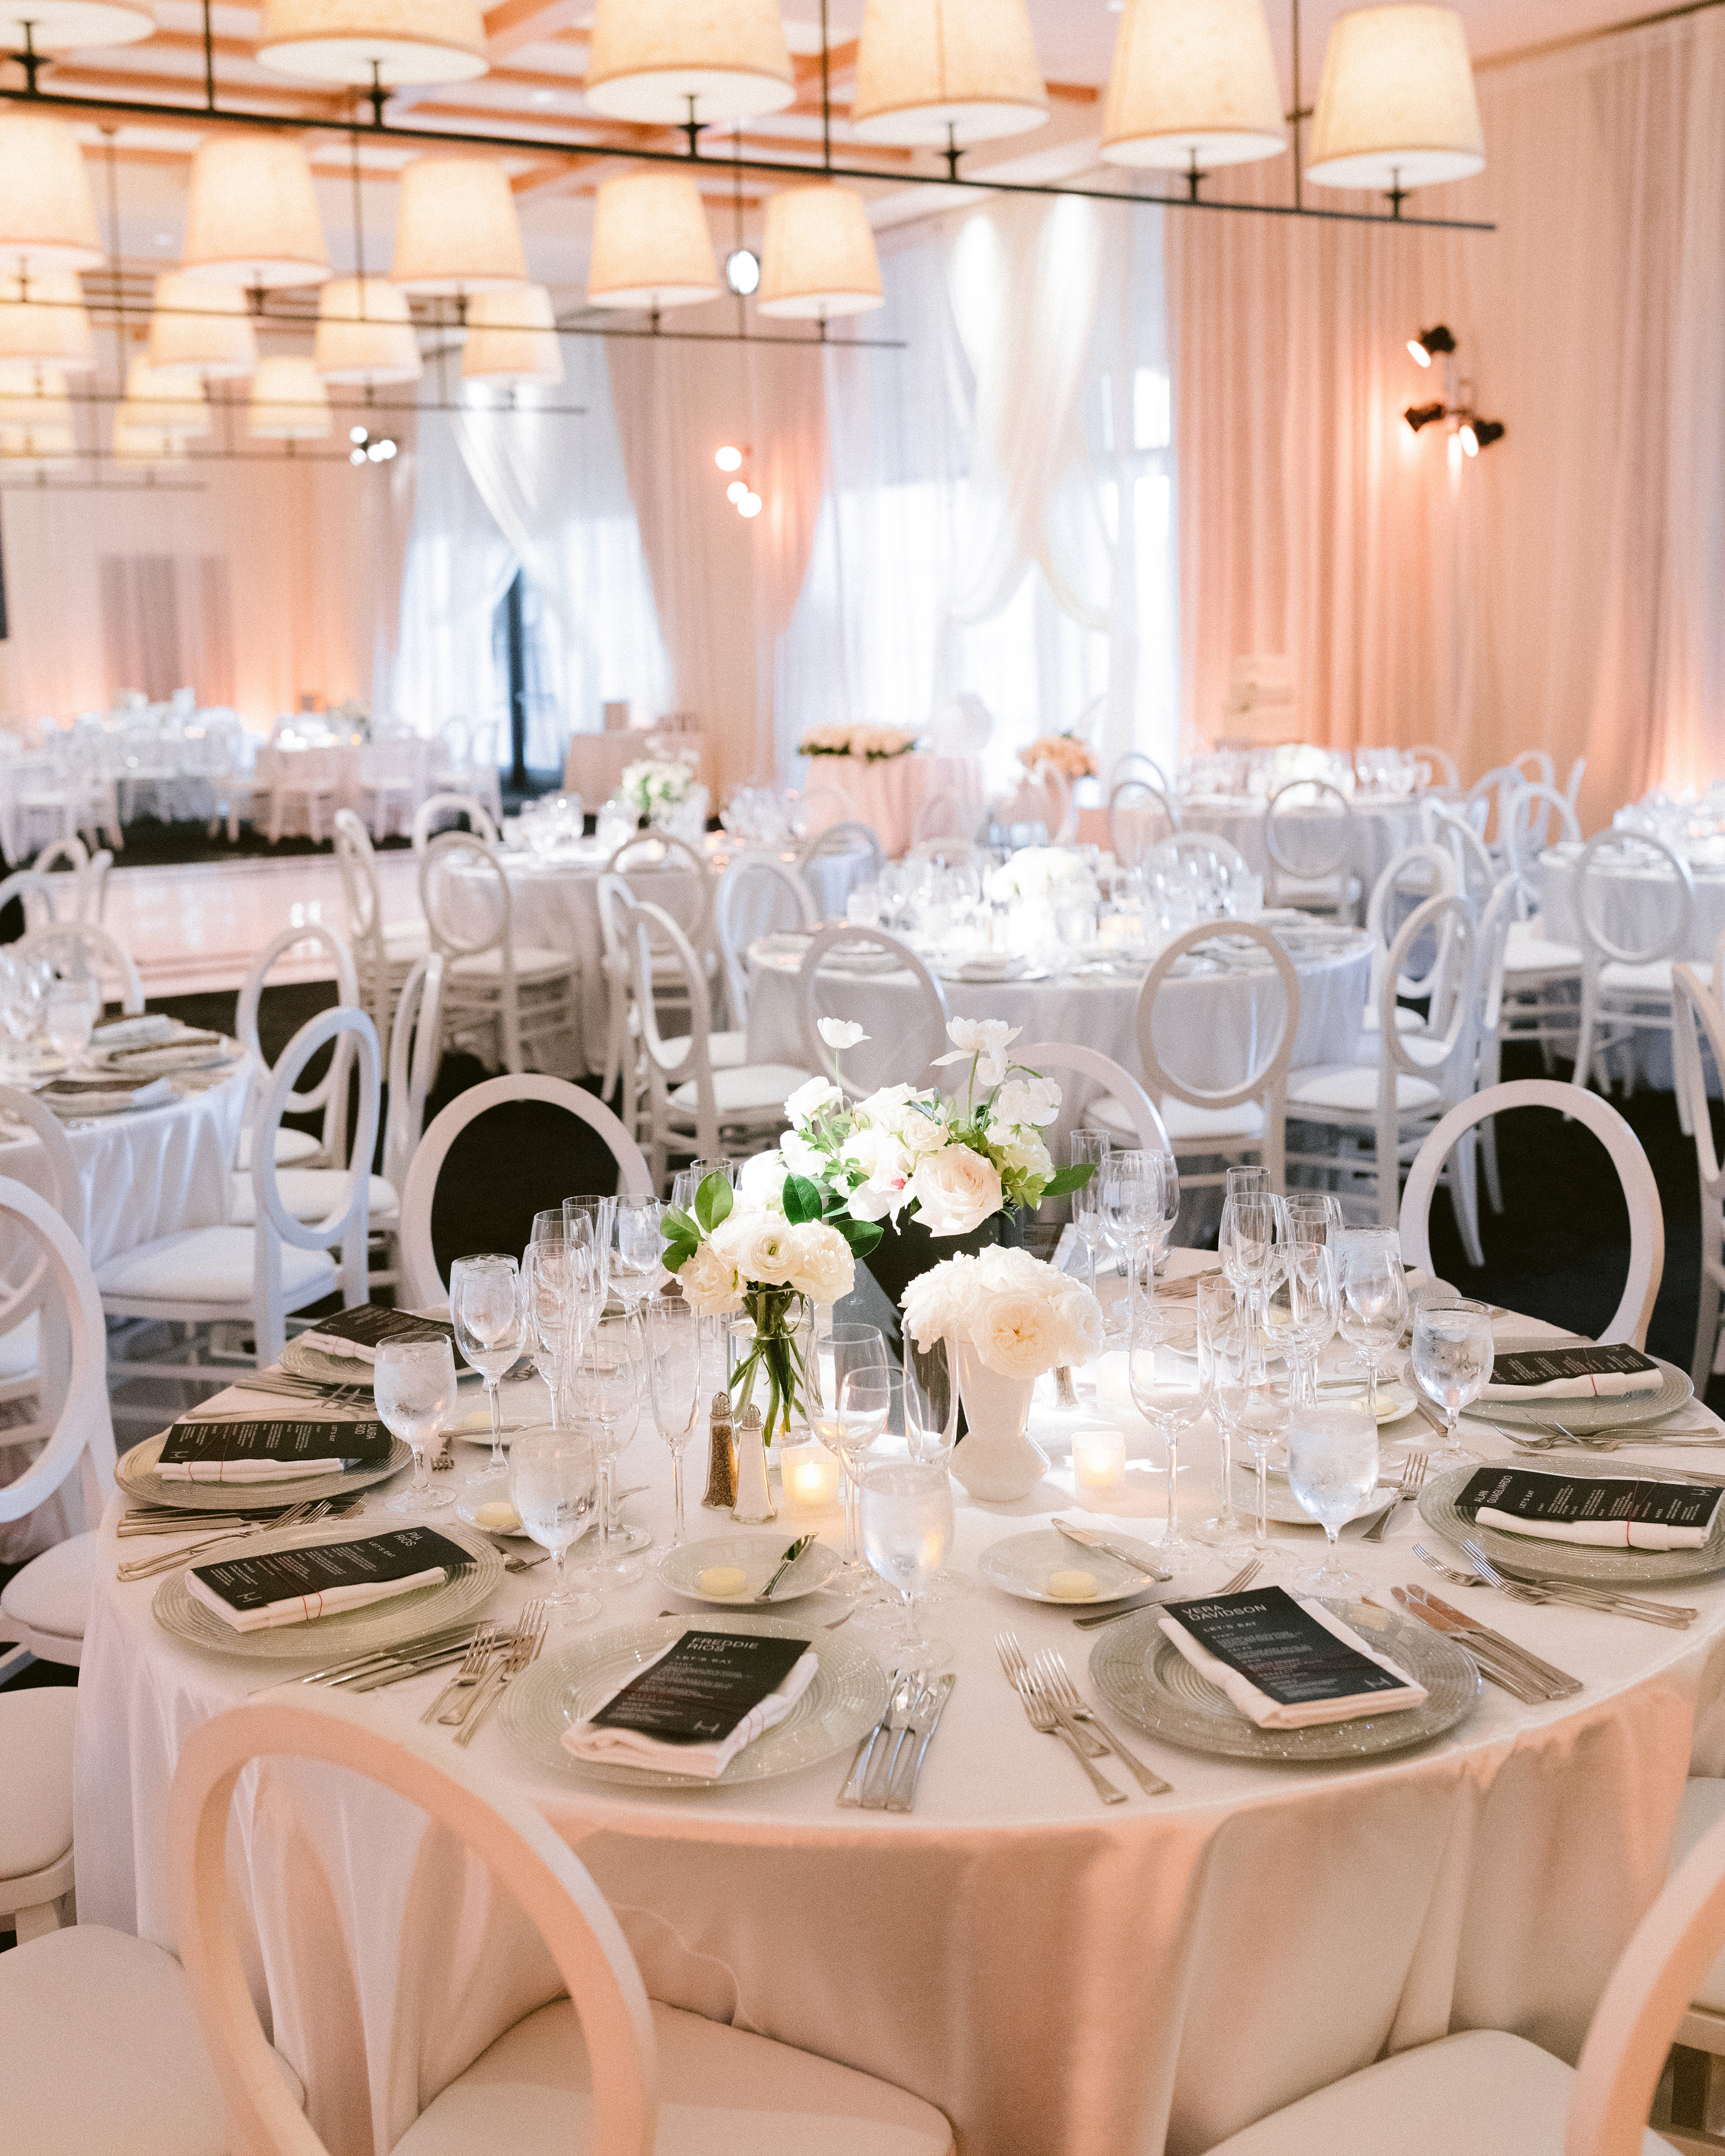 henery michael wedding reception tables